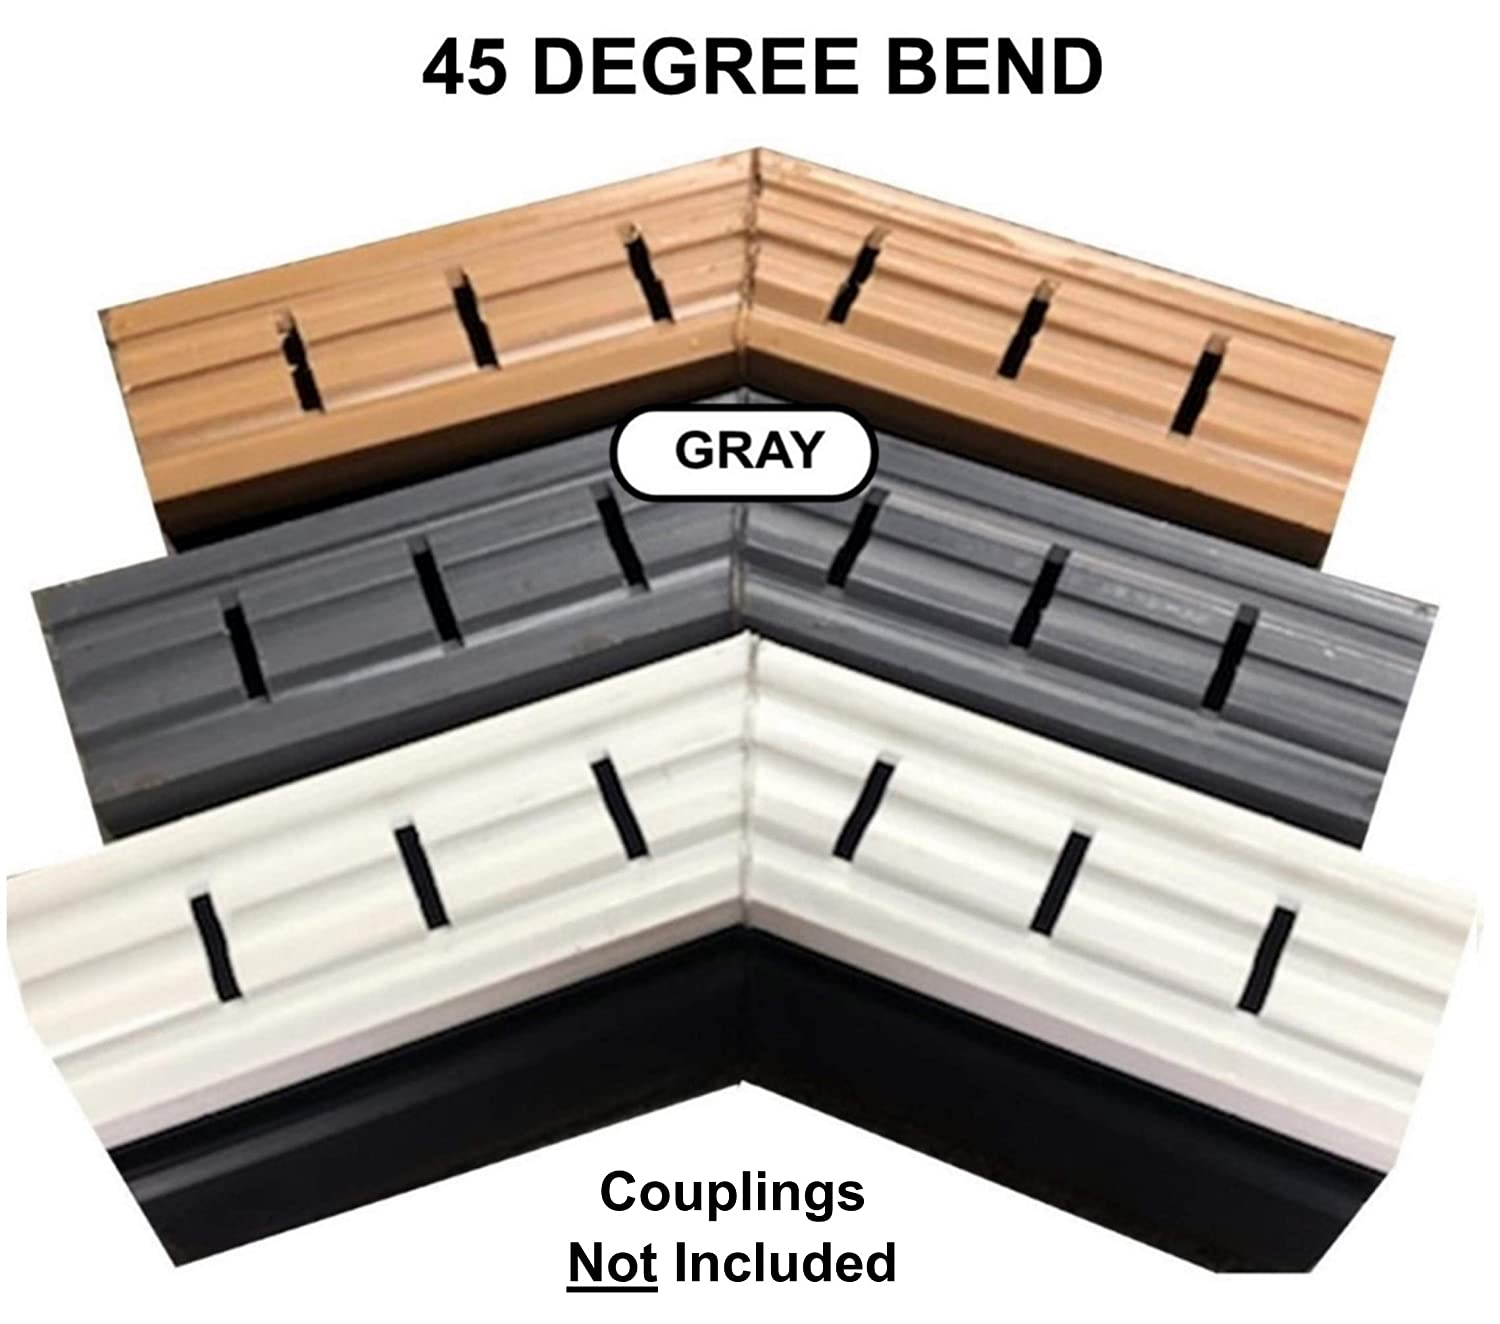 Easy to Install 5 Foot Length, Gray Inside couplings Included 40 Feet Deck Drain Total Using 5 ft Sections x 8 Deck drains